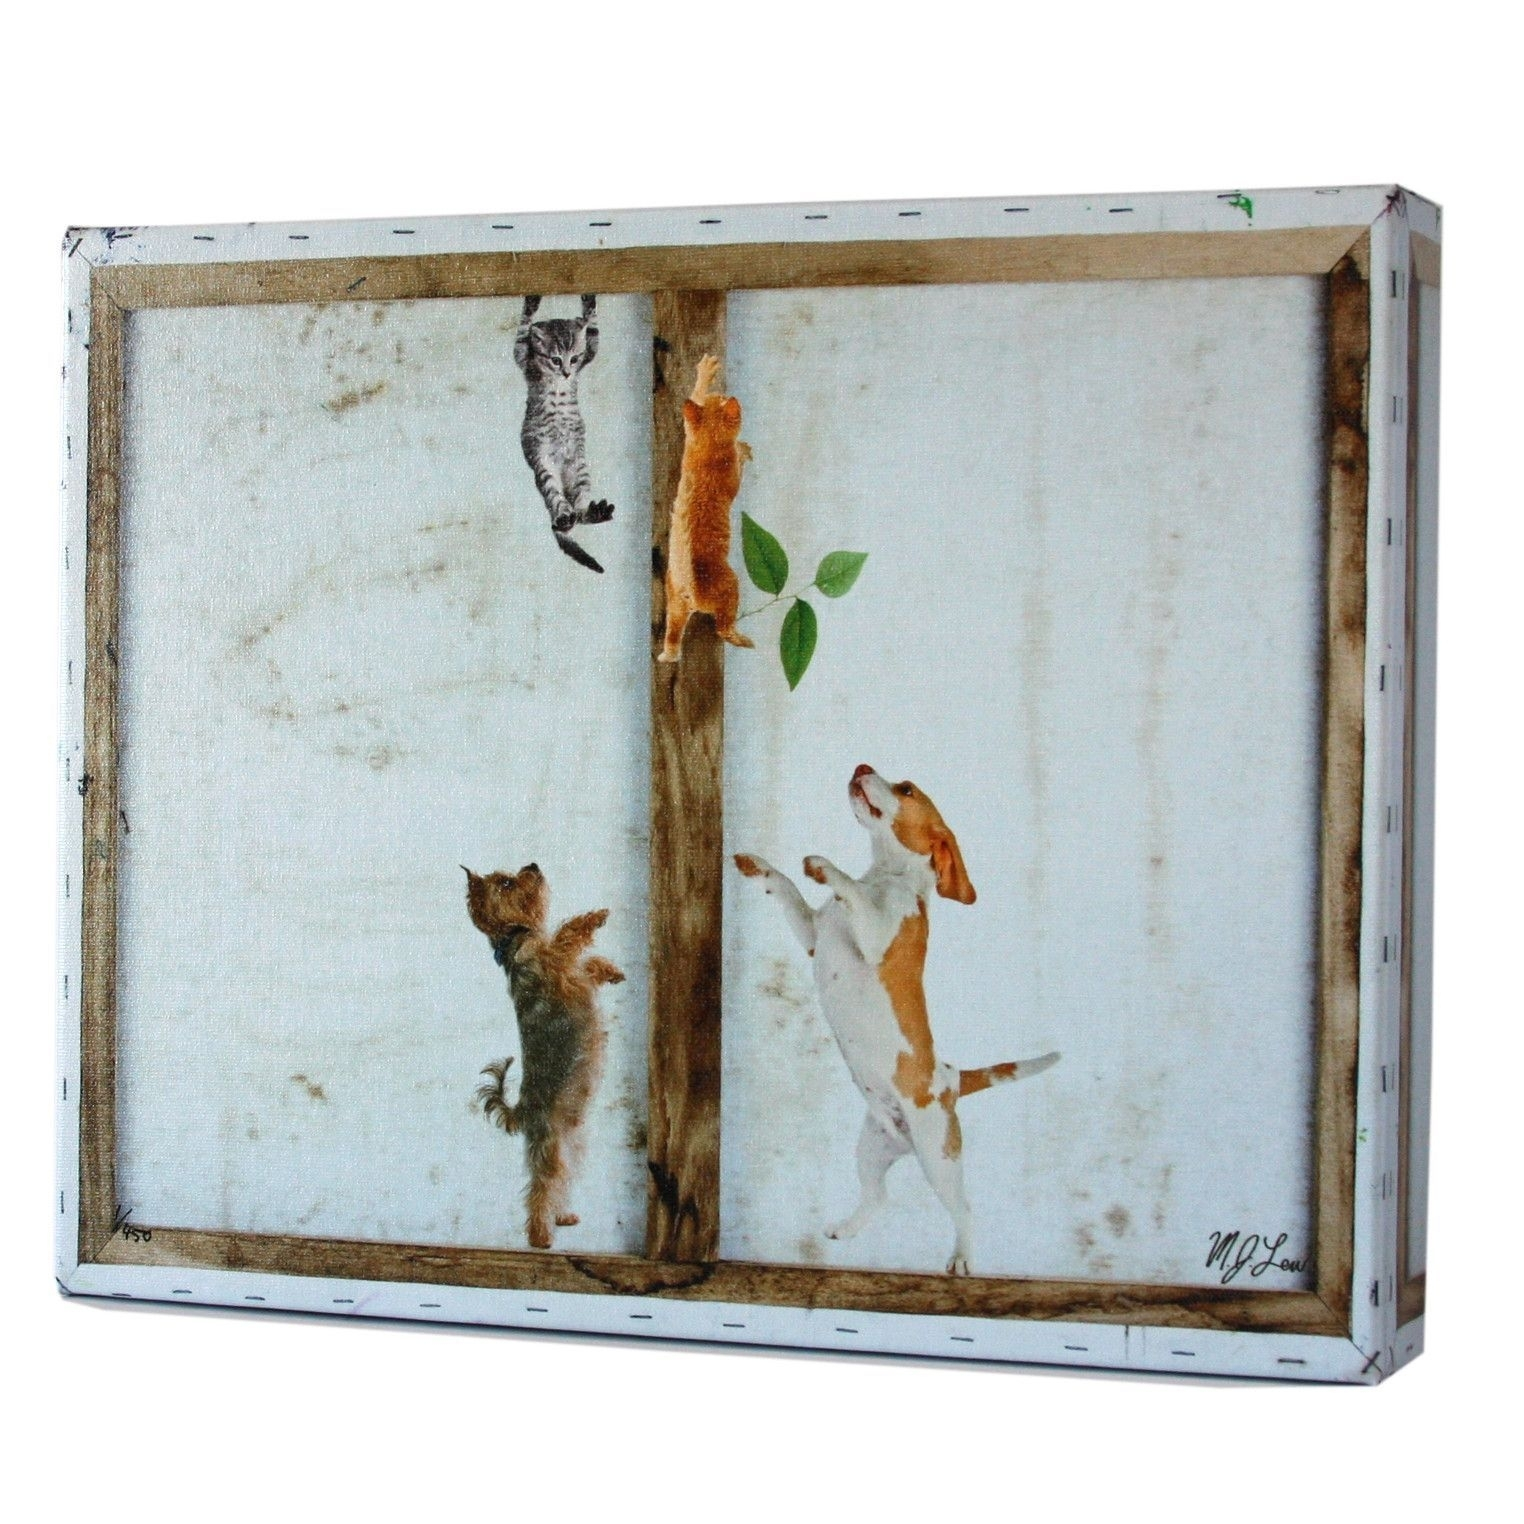 Frame Series: Cats & Dogs Print | Funky Art, Printing And Art Pieces For Latest Funky Art Framed Prints (View 8 of 15)